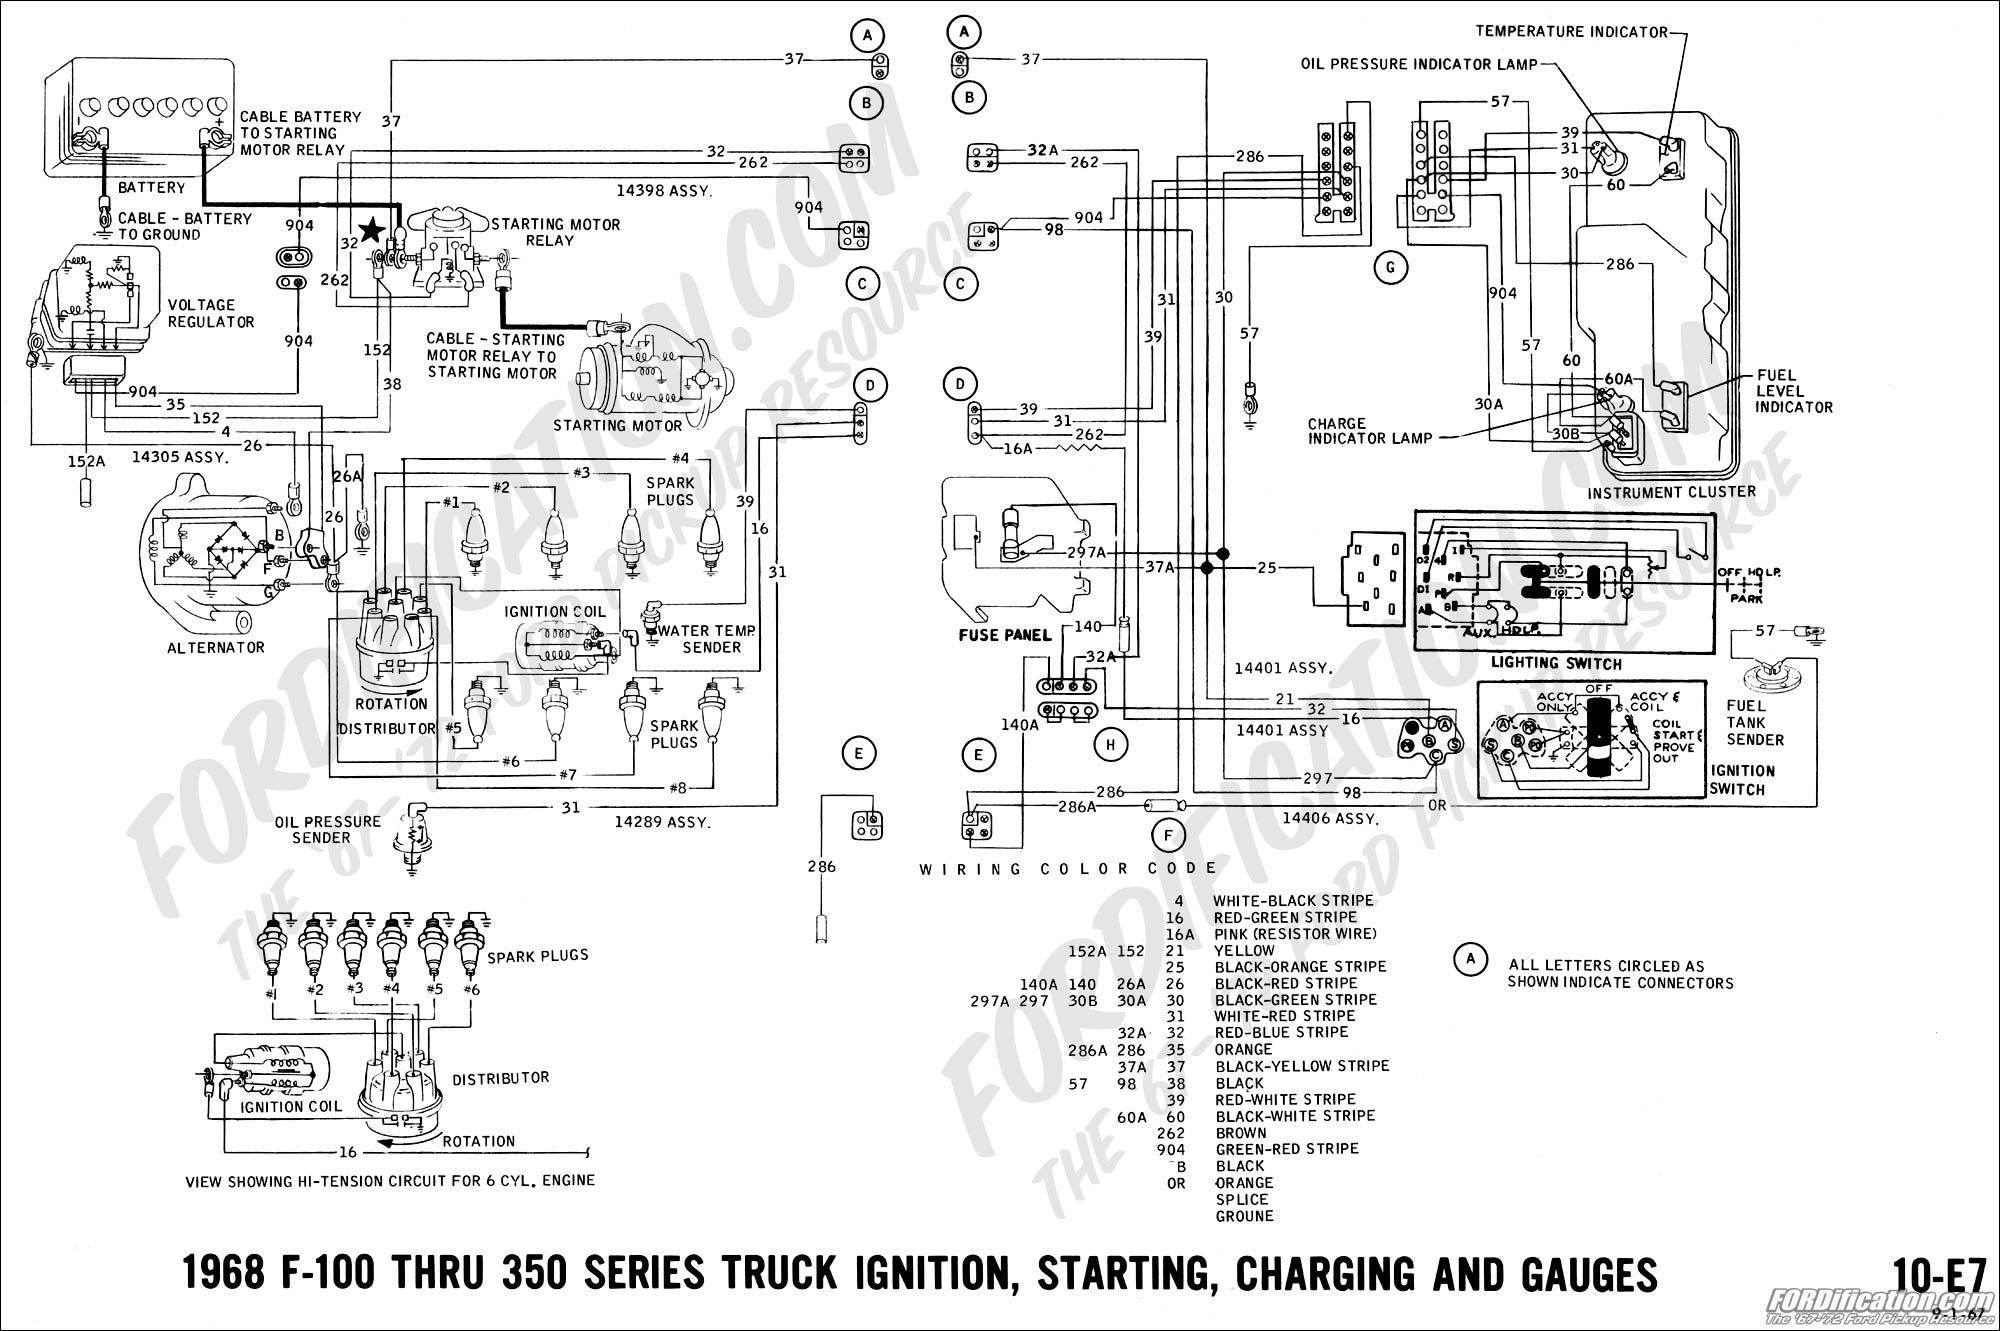 68 09 ford f 250 neutral safety switch wiring diagram wiring diagram 1966 mustang neutral safety switch wiring diagram at edmiracle.co